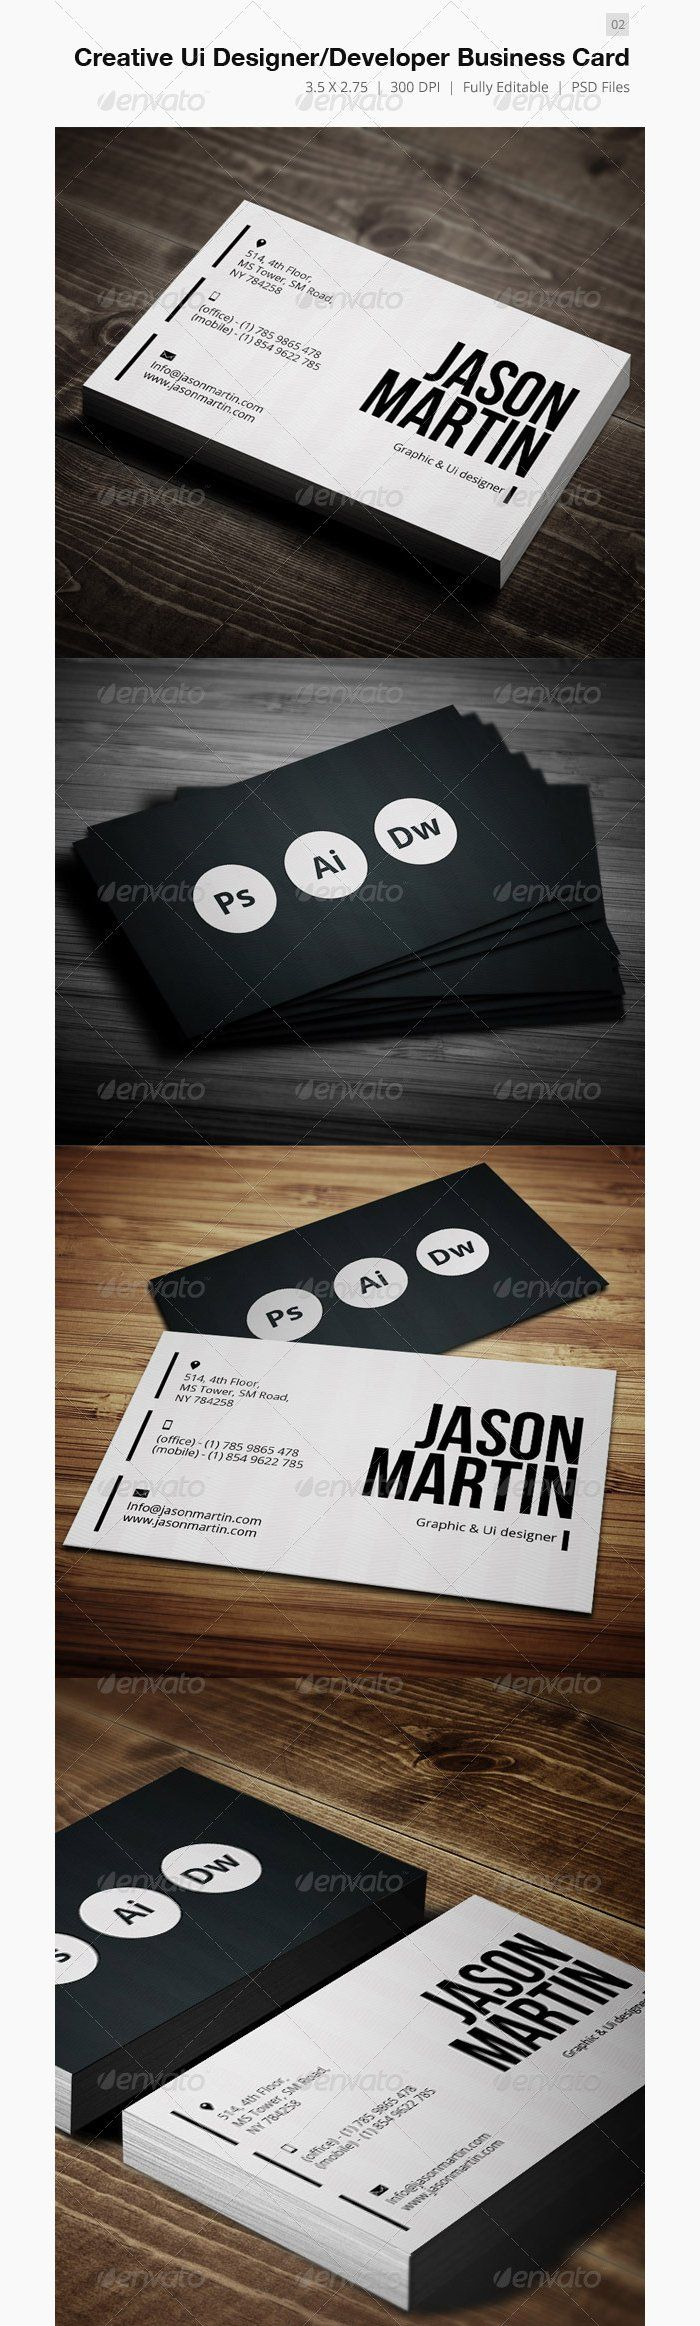 Creative UI Designer – Developer Business Card (Premium Template) by bouncy, for only $6